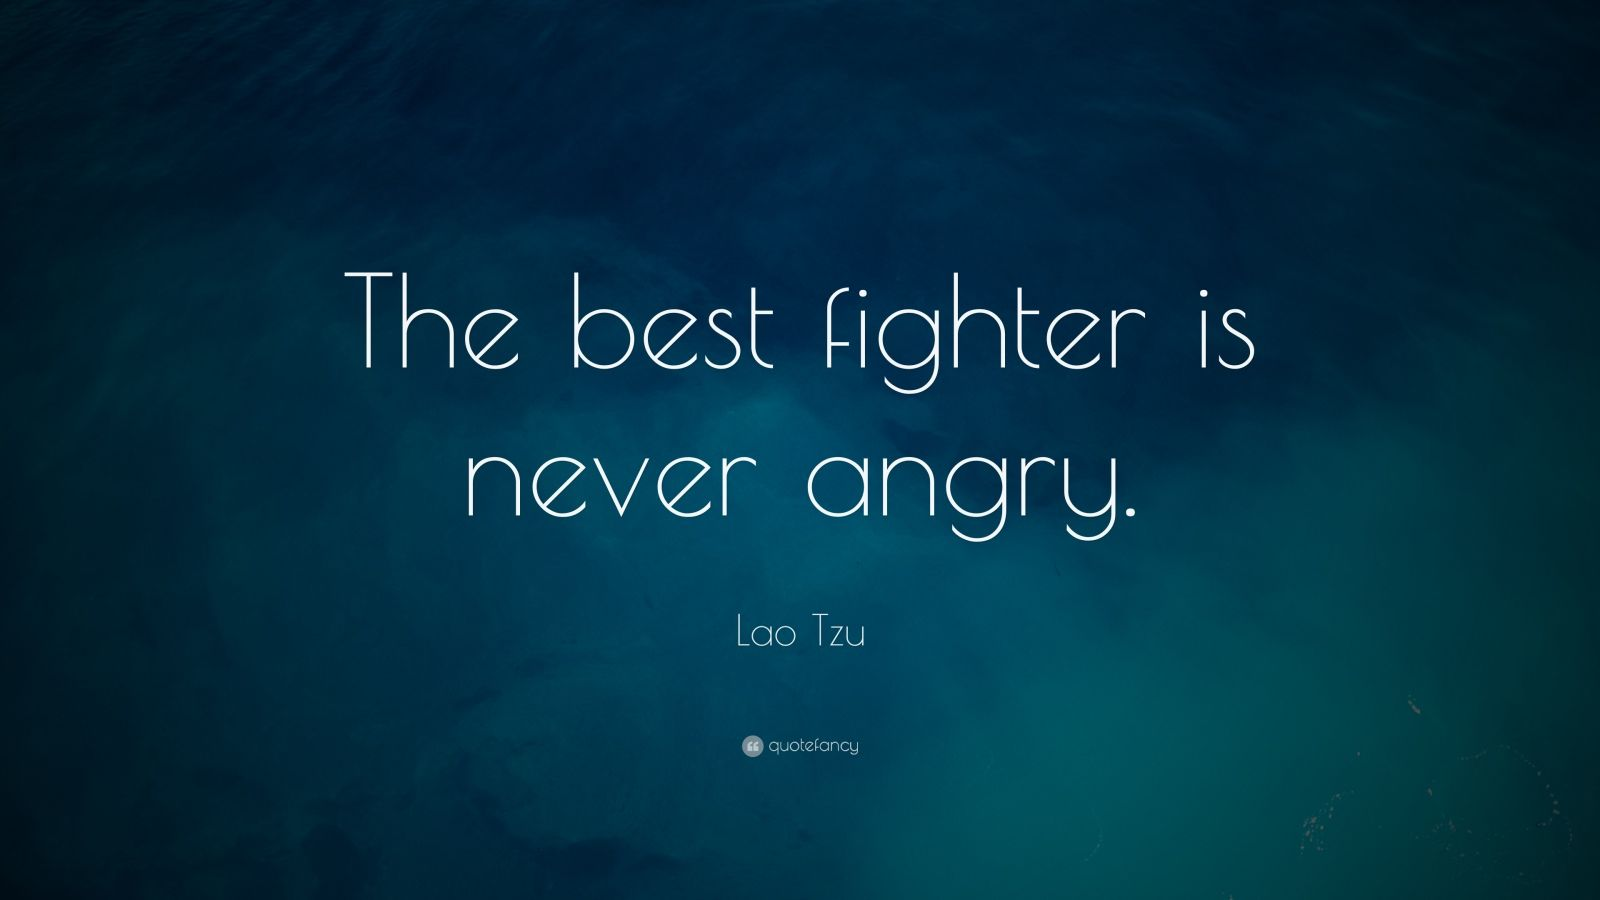 Desktop Wallpaper With Tamil Quotes Lao Tzu Quote The Best Fighter Is Never Angry 19